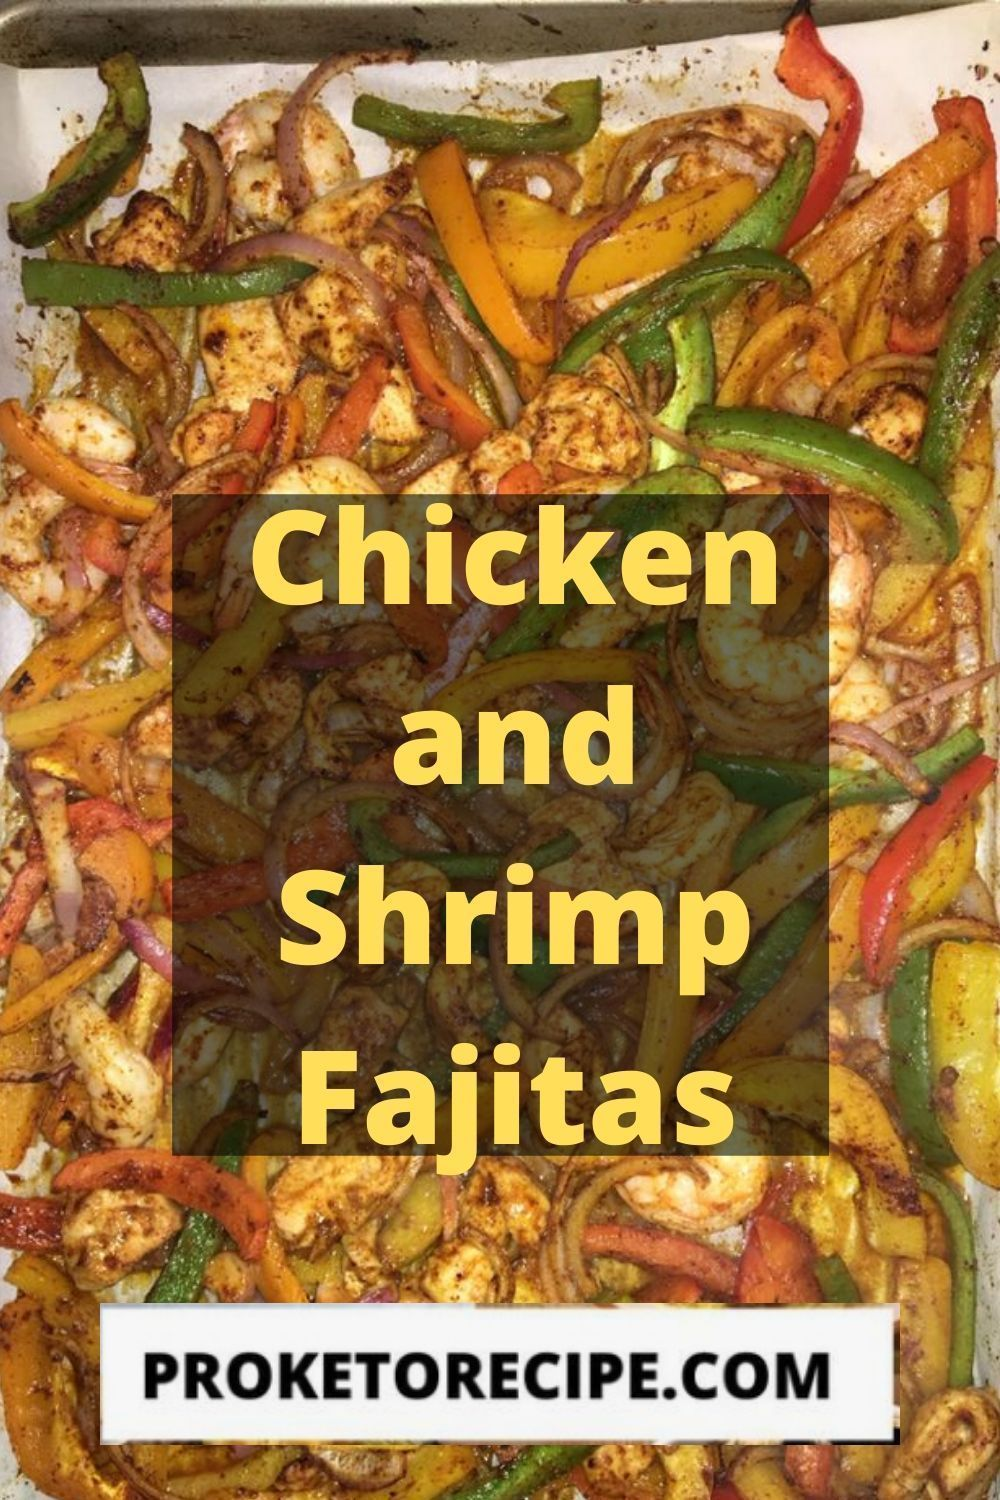 chicken and shrimp fajita recipe #steakfajitarecipe ake a crosscut to dinner tonight with sheet-pan fajitas. Peppers, onions, chicken and shrimp—all the great stuff, all on one pan.#keto#chicken#fajita#recipe #beeffajitarecipe chicken and shrimp fajita recipe #steakfajitarecipe ake a crosscut to dinner tonight with sheet-pan fajitas. Peppers, onions, chicken and shrimp—all the great stuff, all on one pan.#keto#chicken#fajita#recipe #beeffajitarecipe